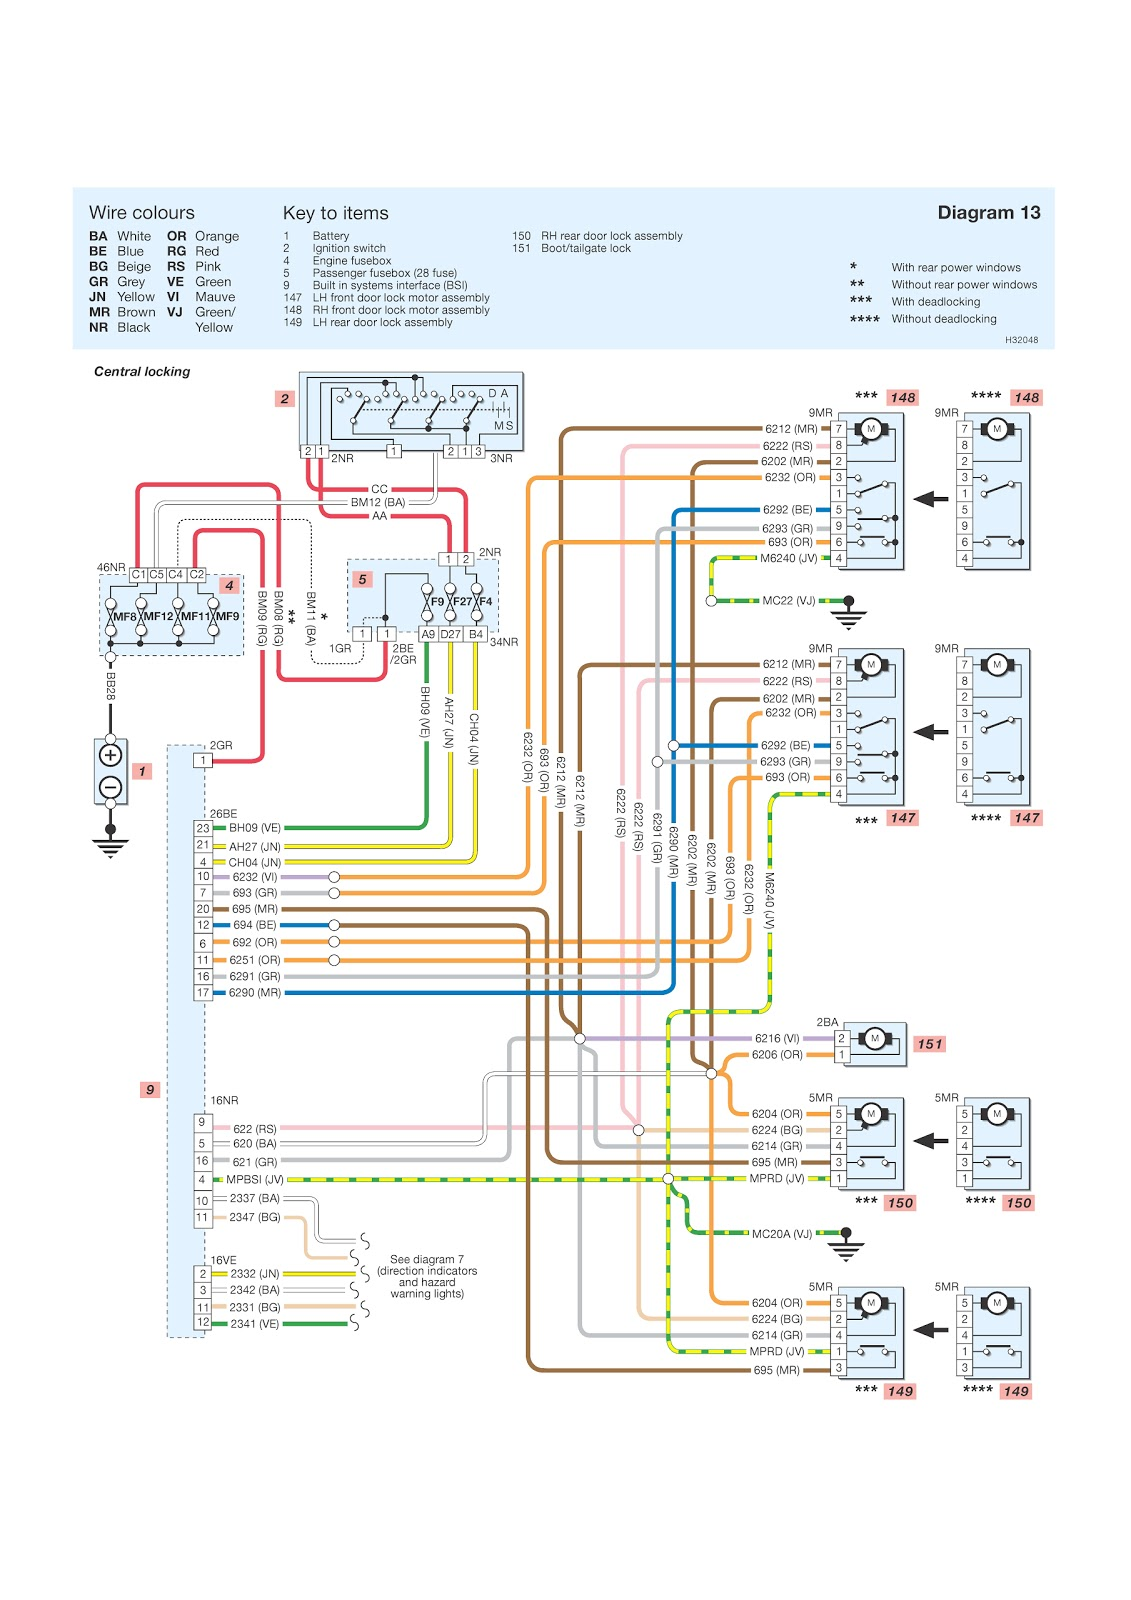 Wiring Diagram Peugeot 206 : Central locking wiring diagram for peugeot